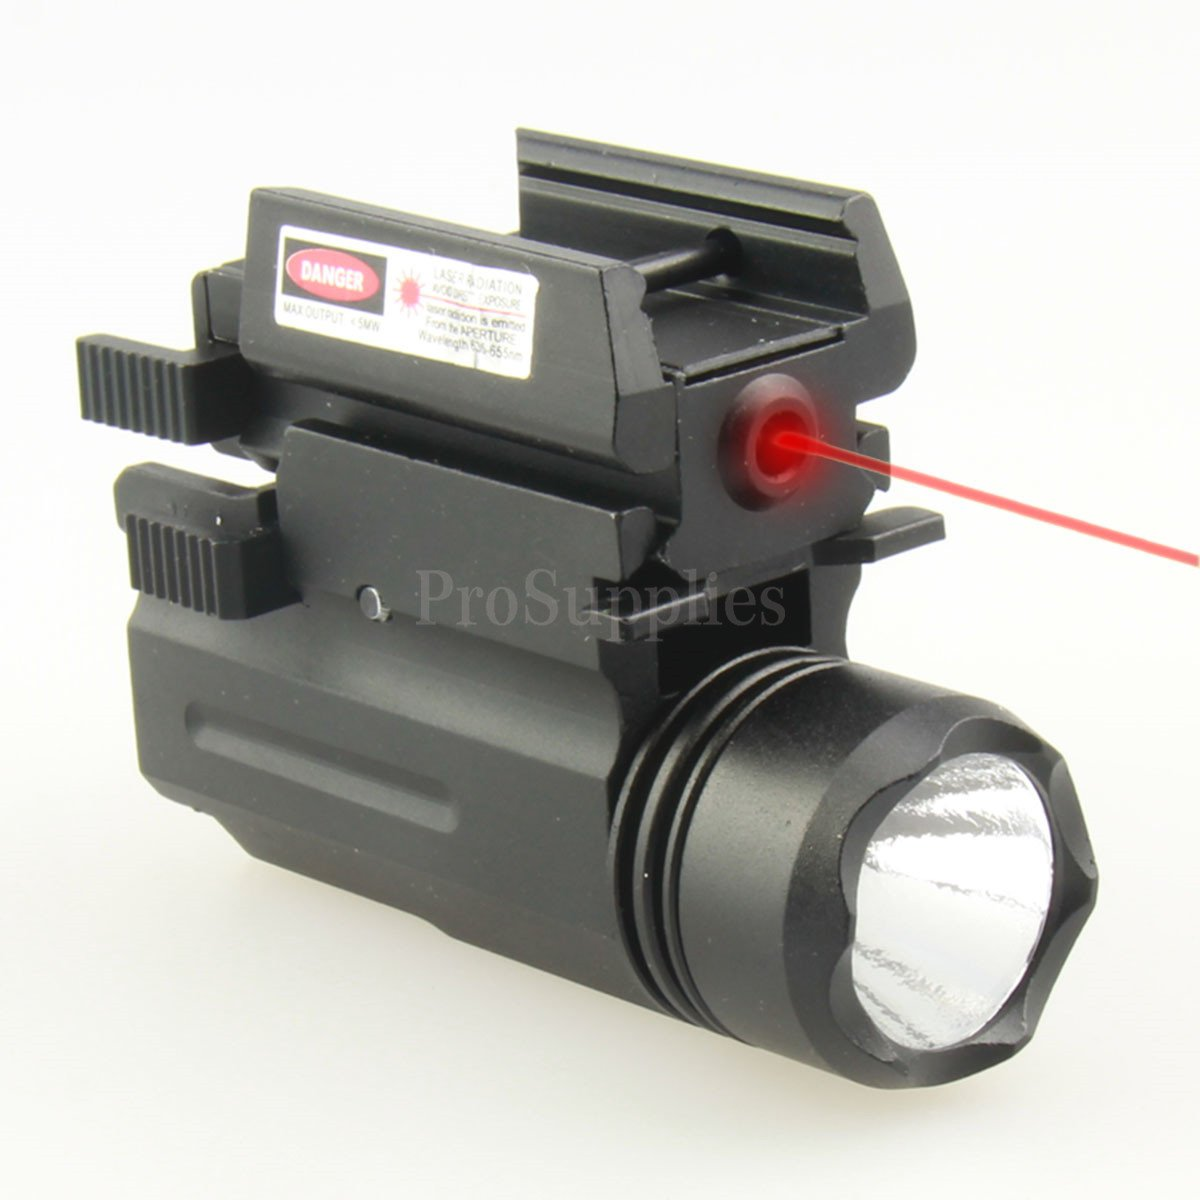 TACFUN Tactical QD Quick Release Flash Light Flashlight + Compact Red Laser COMBO SET